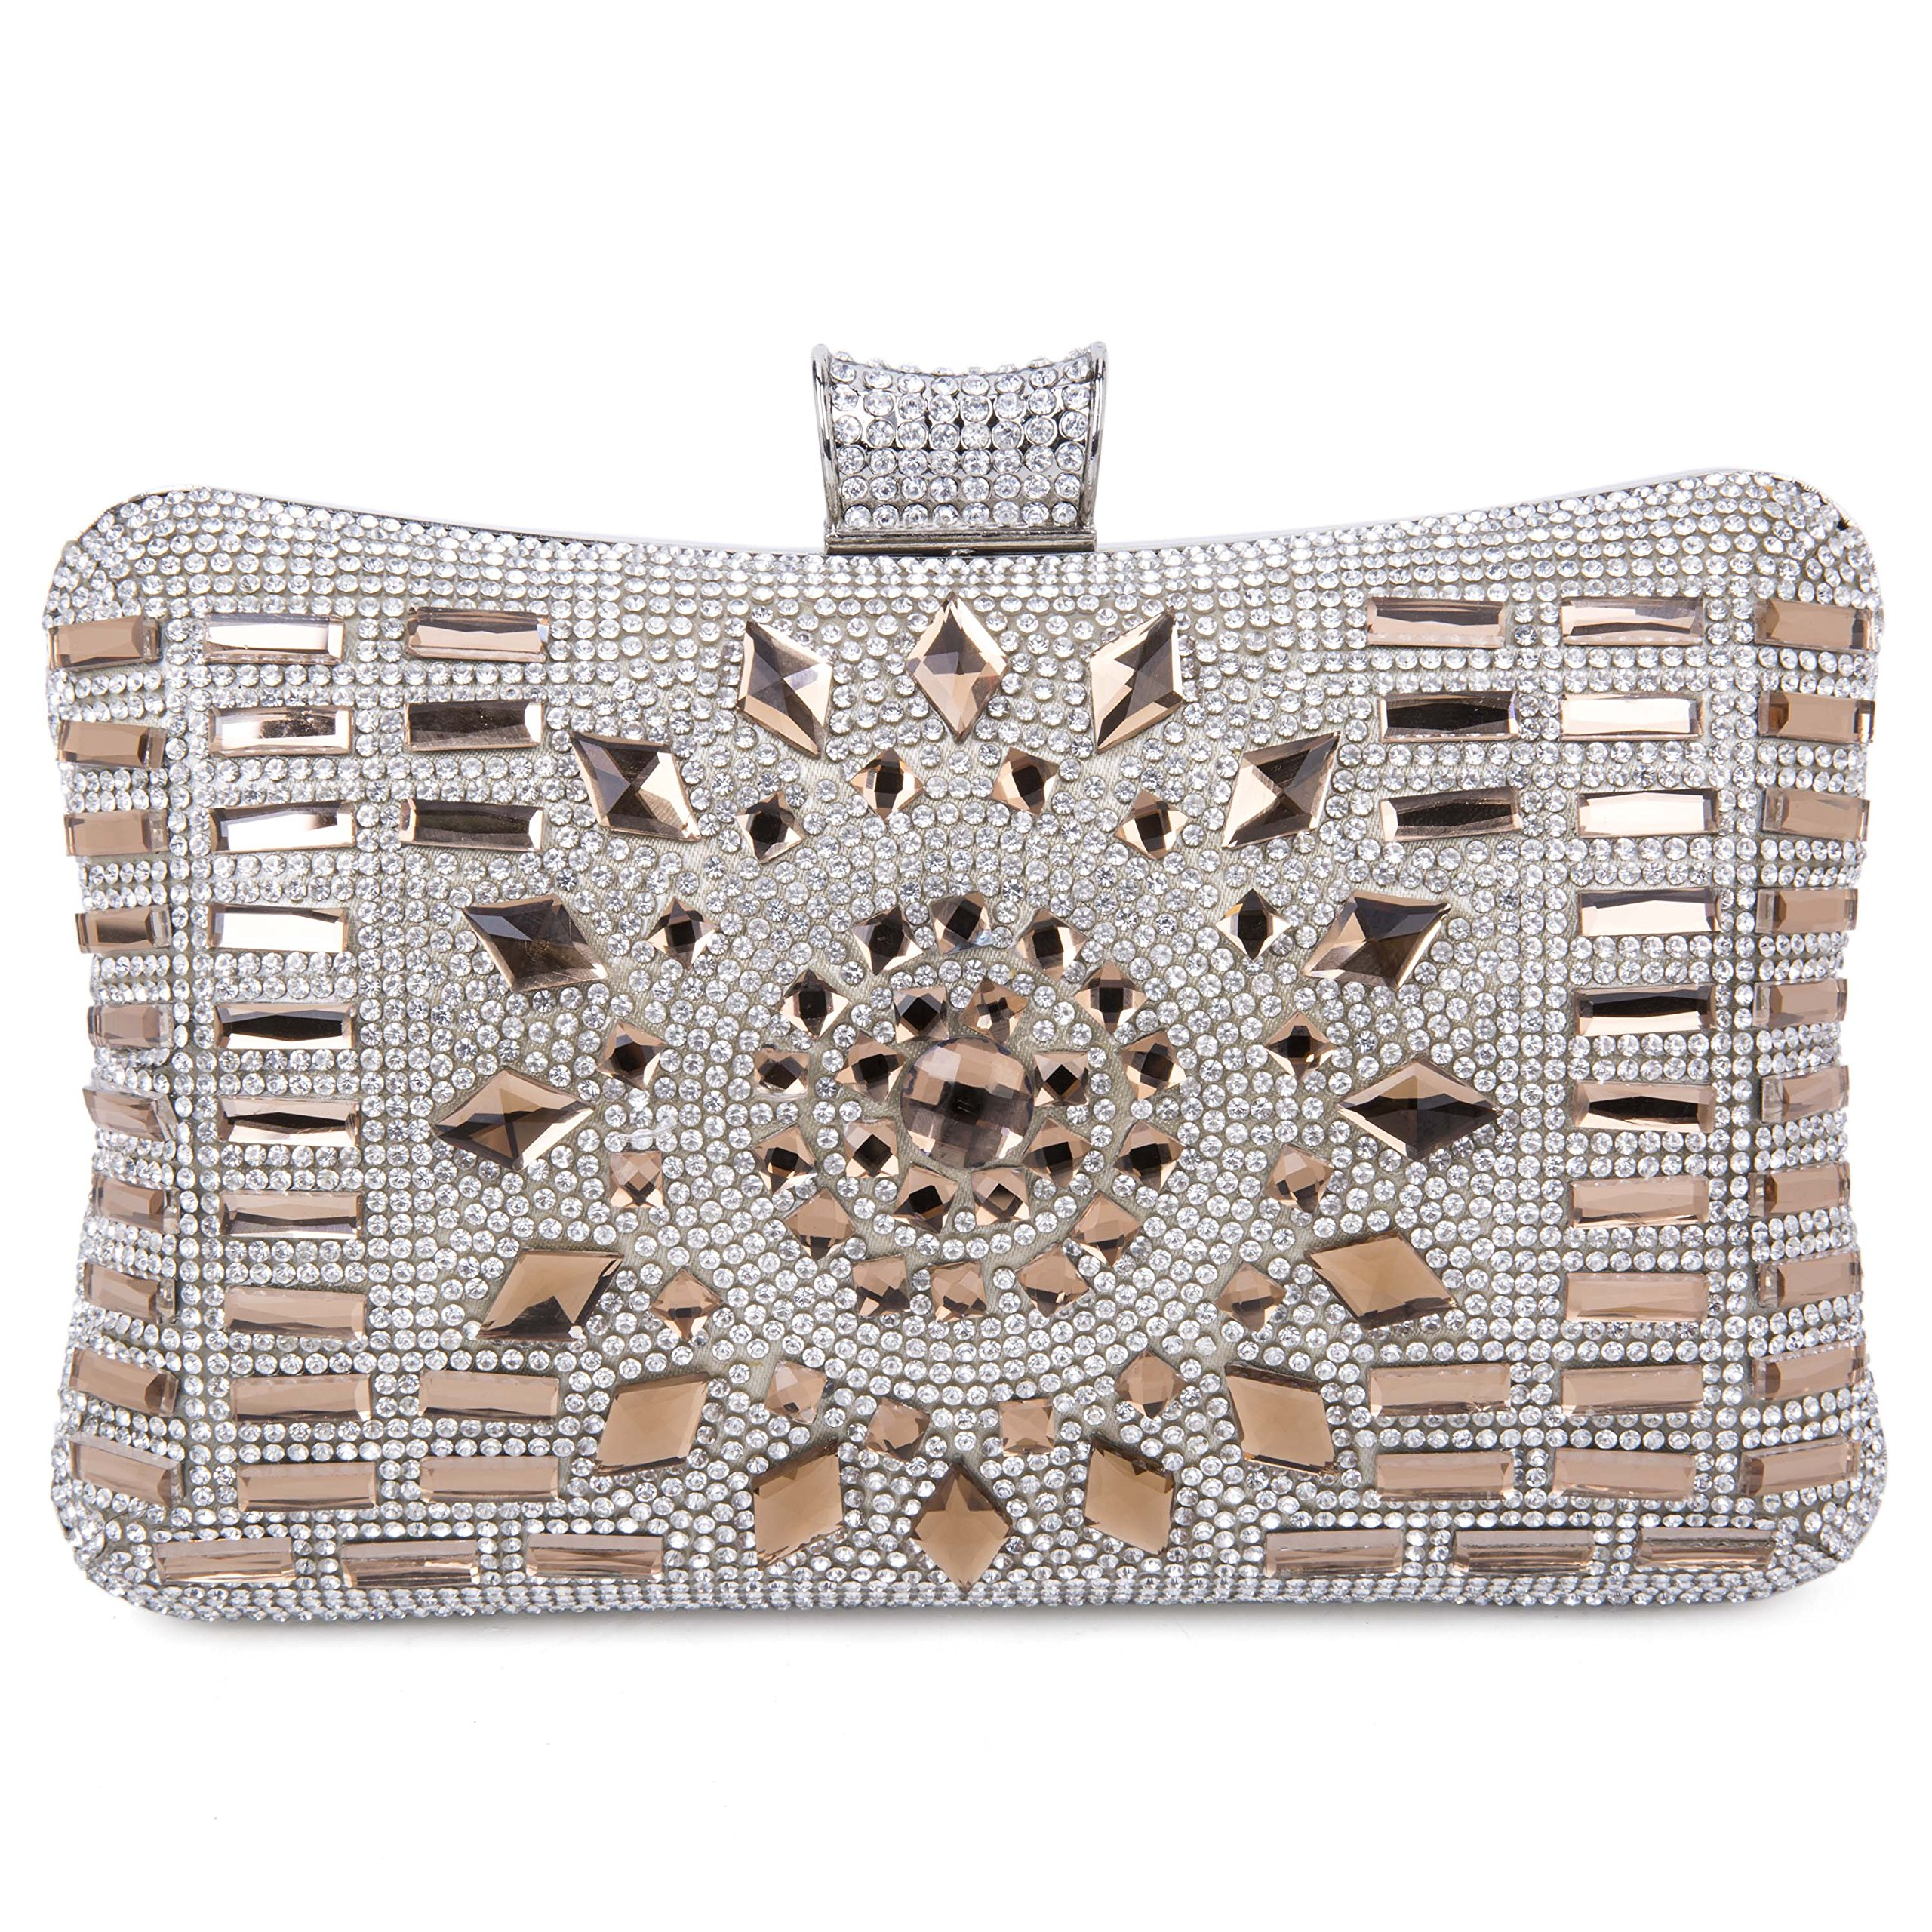 Tanpell Women's Geometric Diamante Evening Banquet Party Clutch Bags Coffee